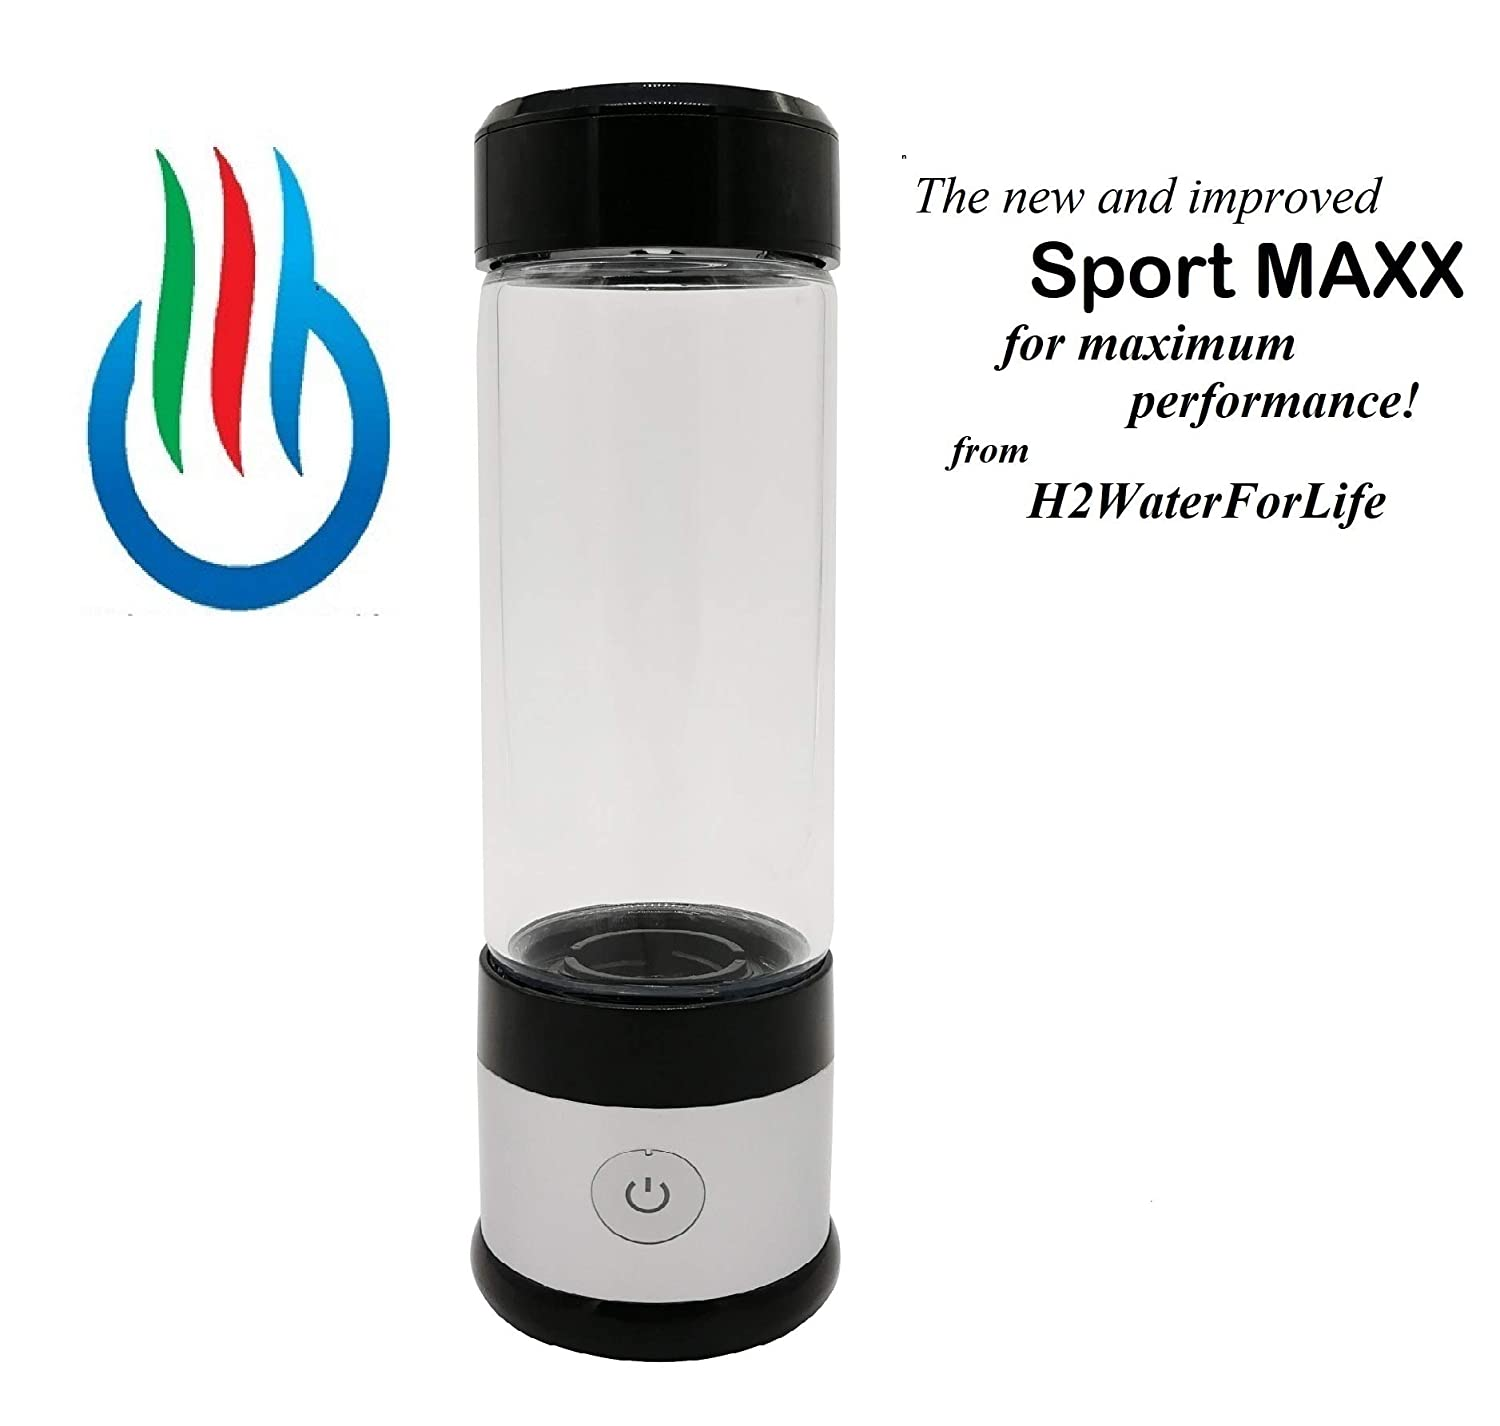 H2 USB Sports MAXX Hydrogen Water Generator with Glass Bottle